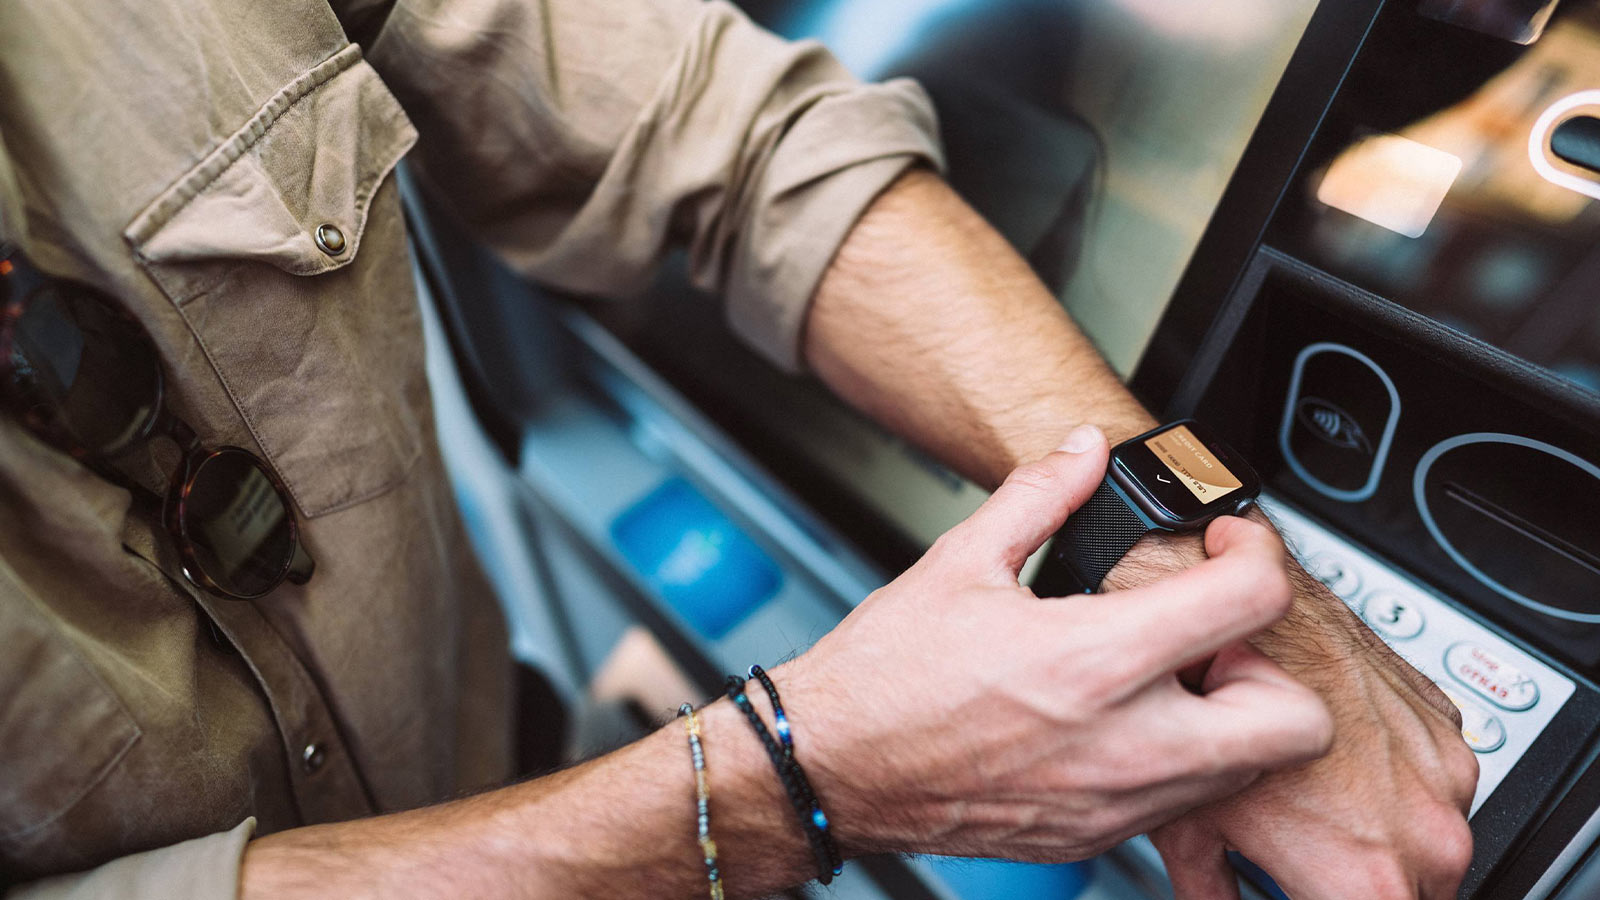 Man making a transaction with smartwatch